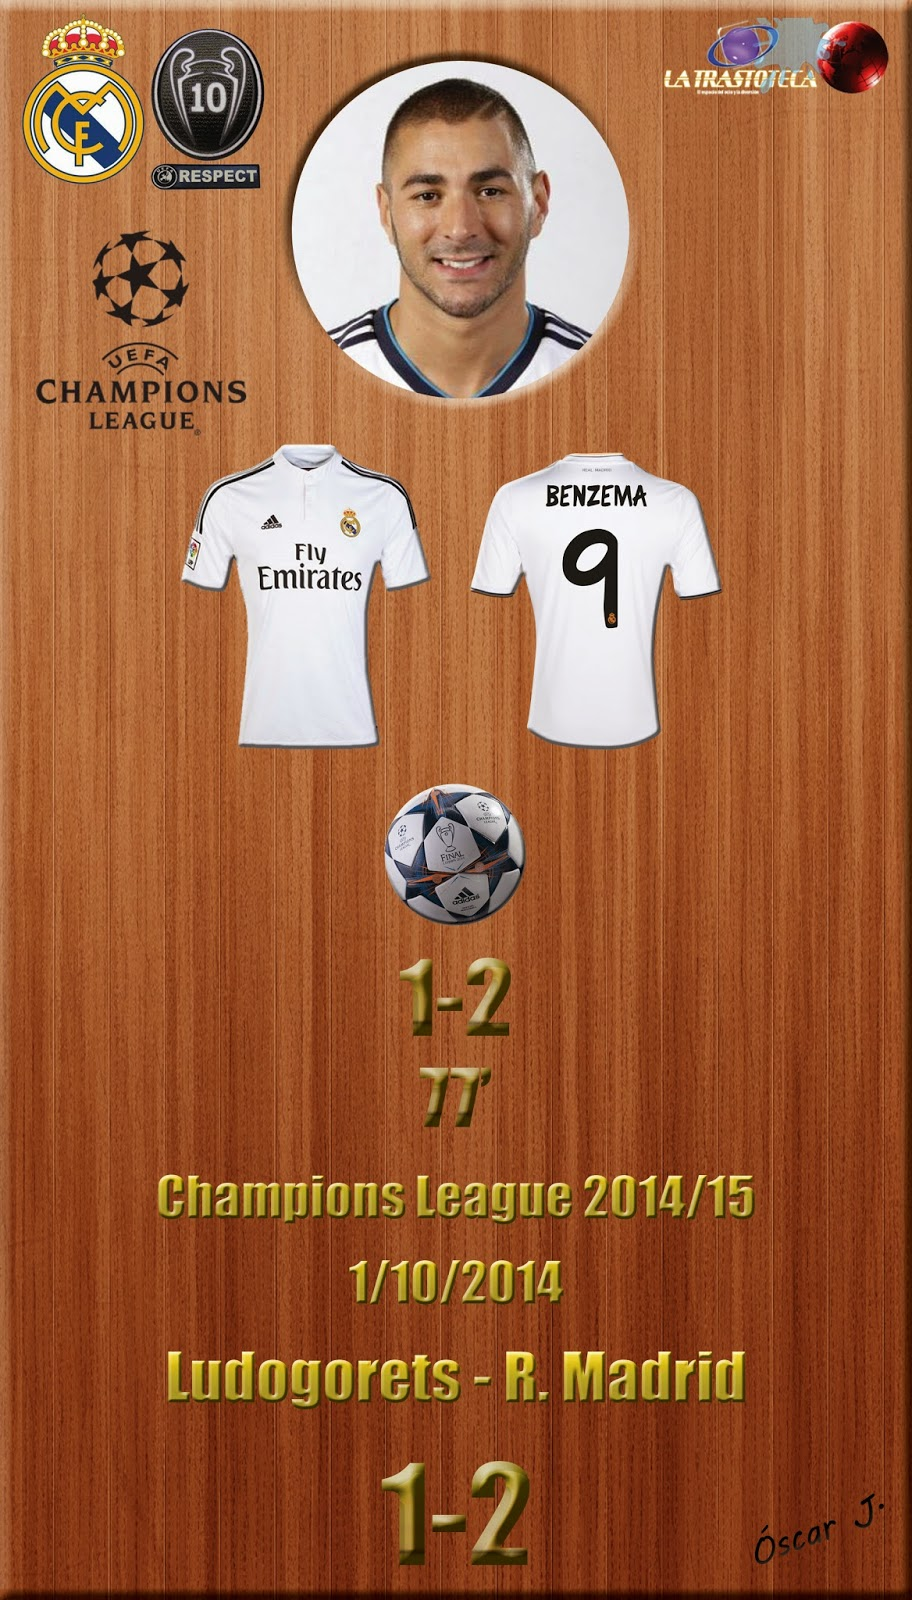 Benzema (1-2) - Ludogorets 1-2 Real Madrid - Champions League 2014/15 - (1/10/2014)